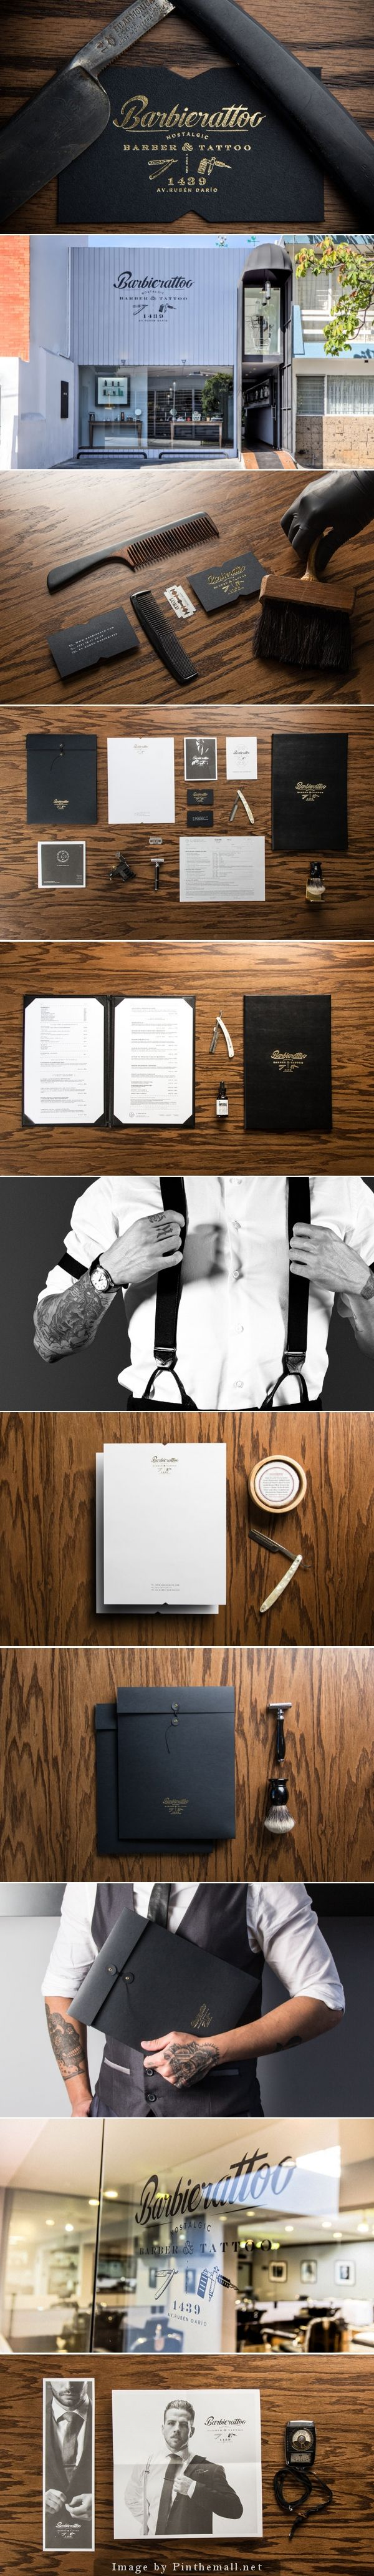 Cool Brand Identity Design. Barber  Tattoo Parlor Barbierattoo. #branding #brandidentity [http://www.pinterest.com/alfredchong/]